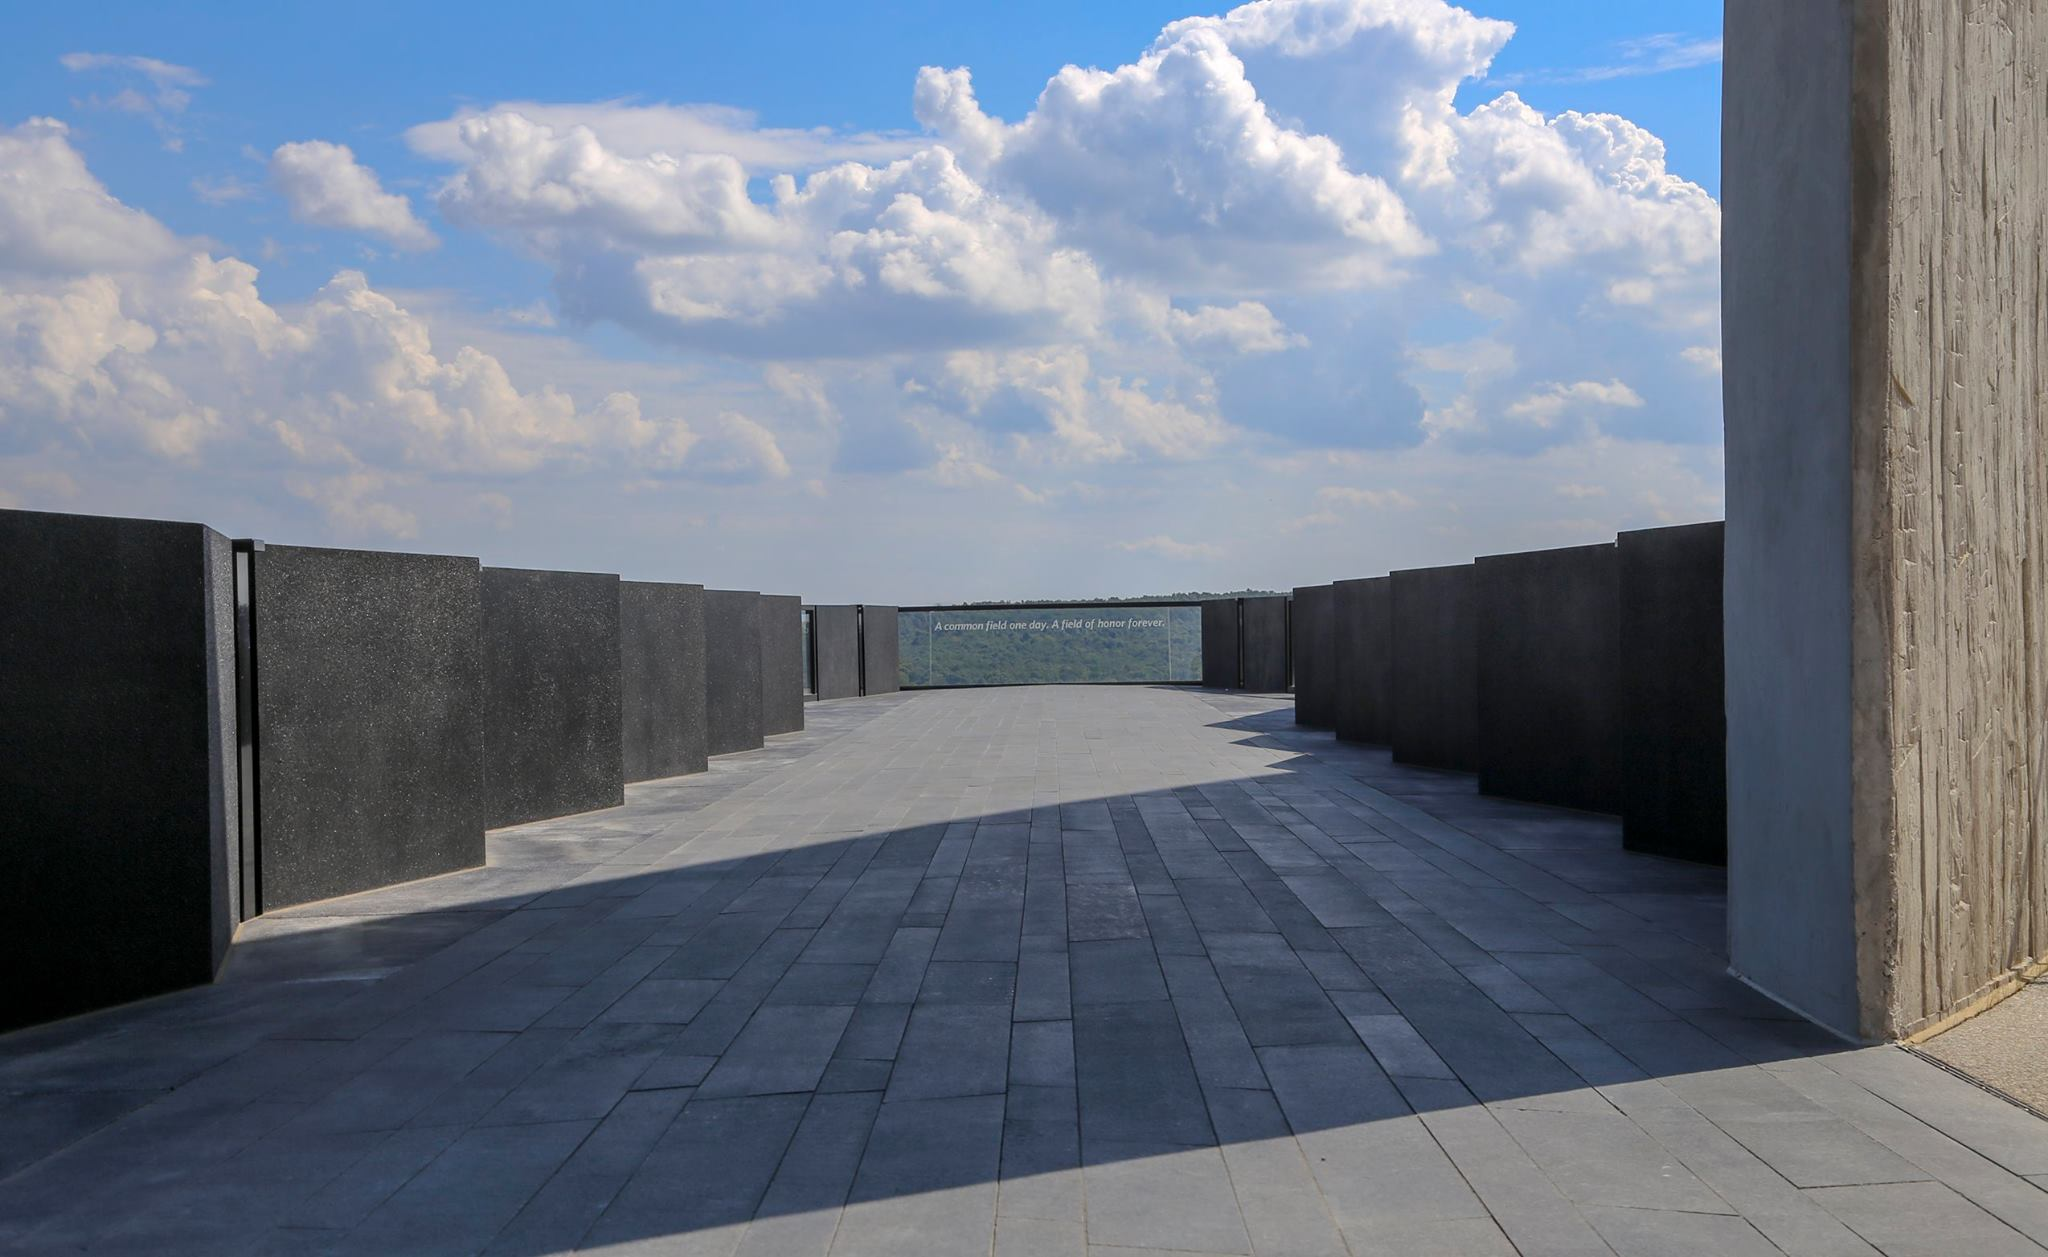 Flight 93 National Memorial Walkway